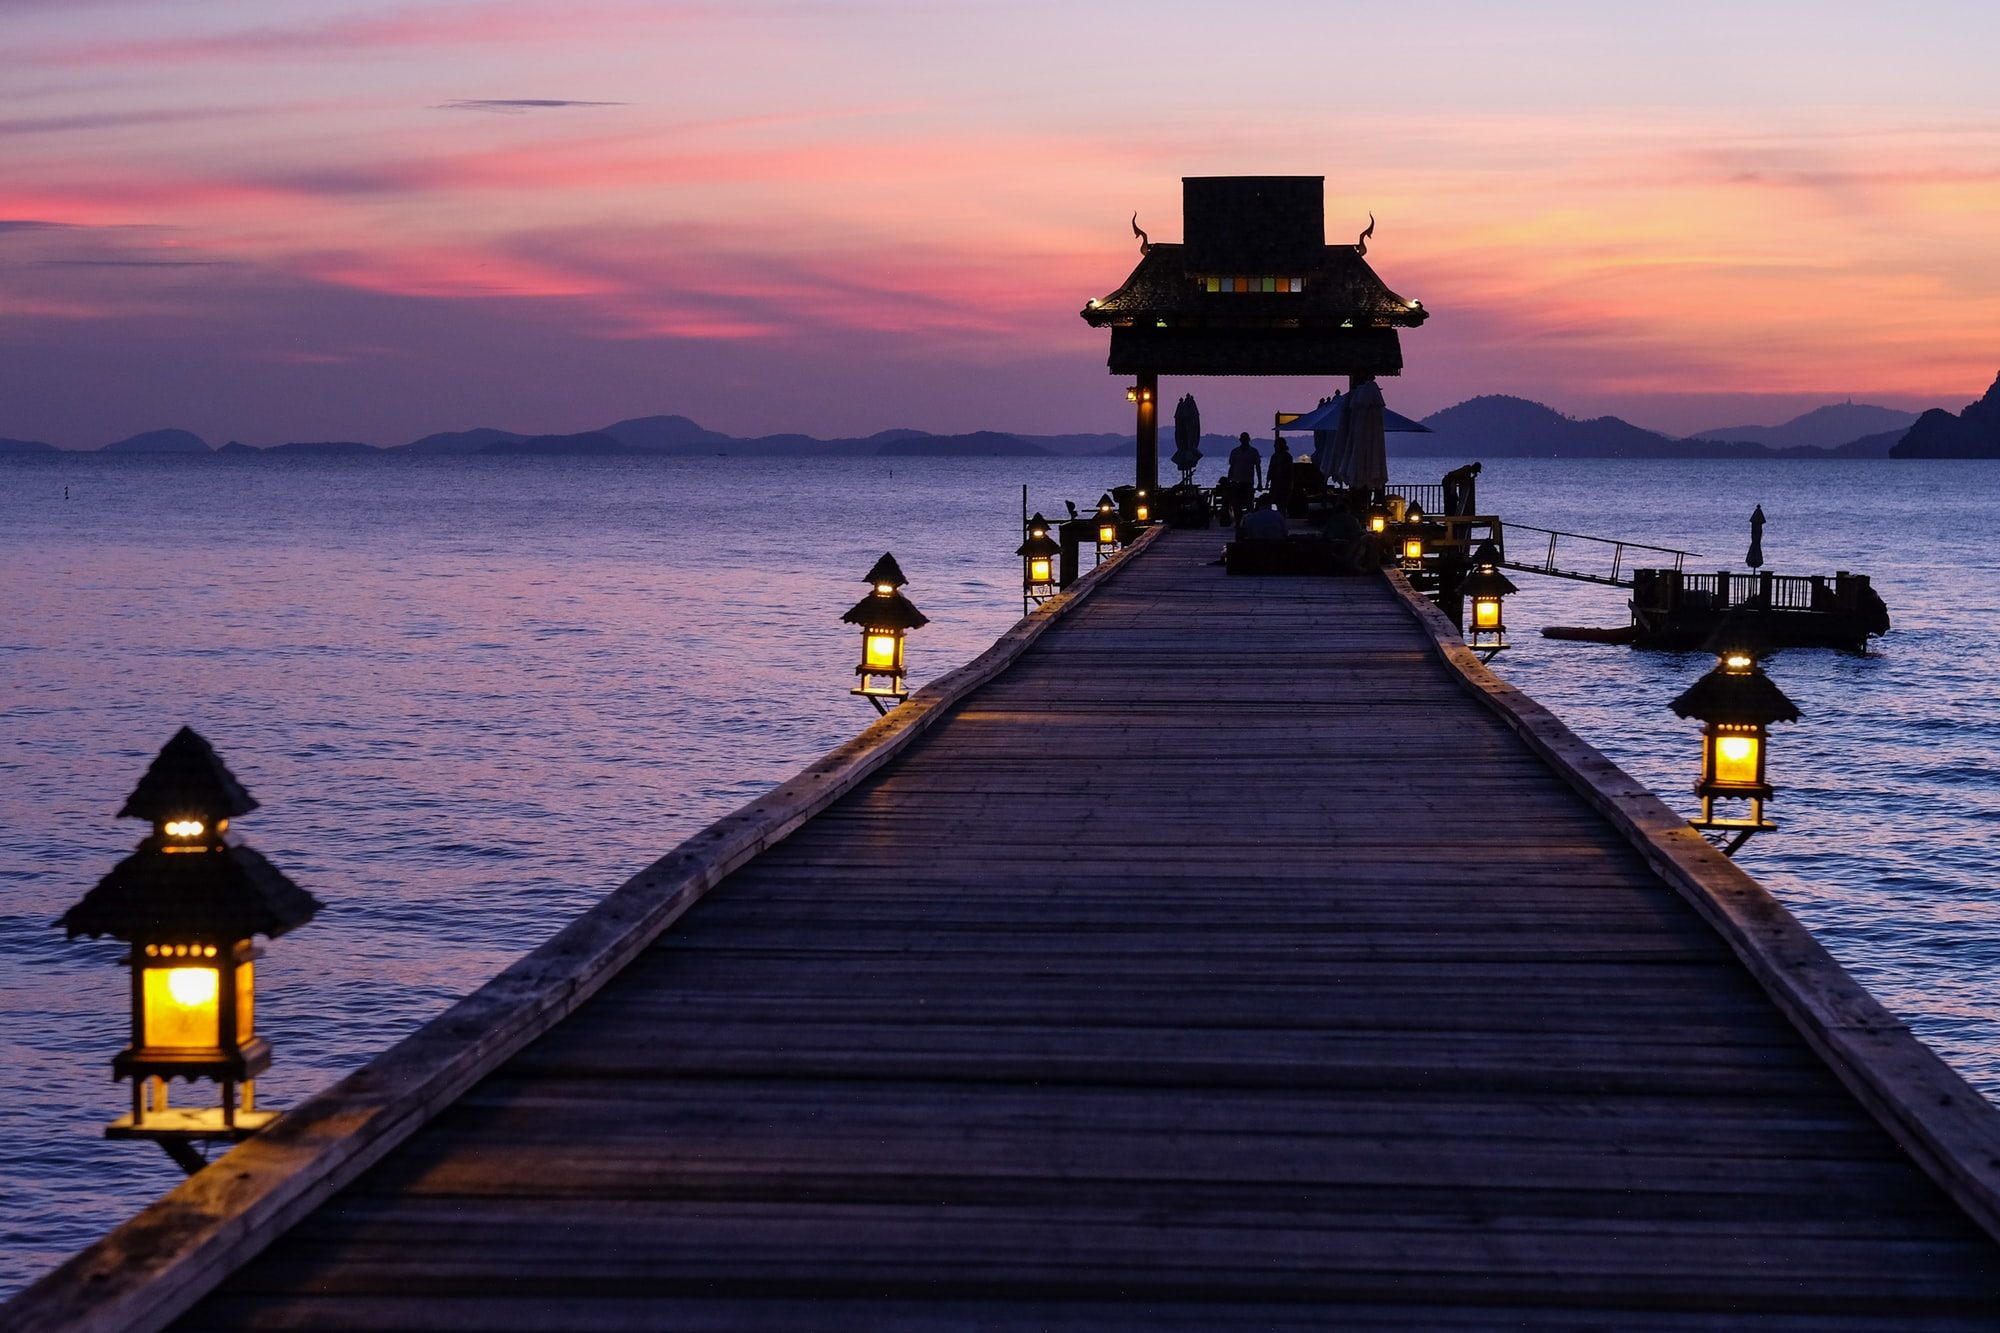 Pier in the sunset